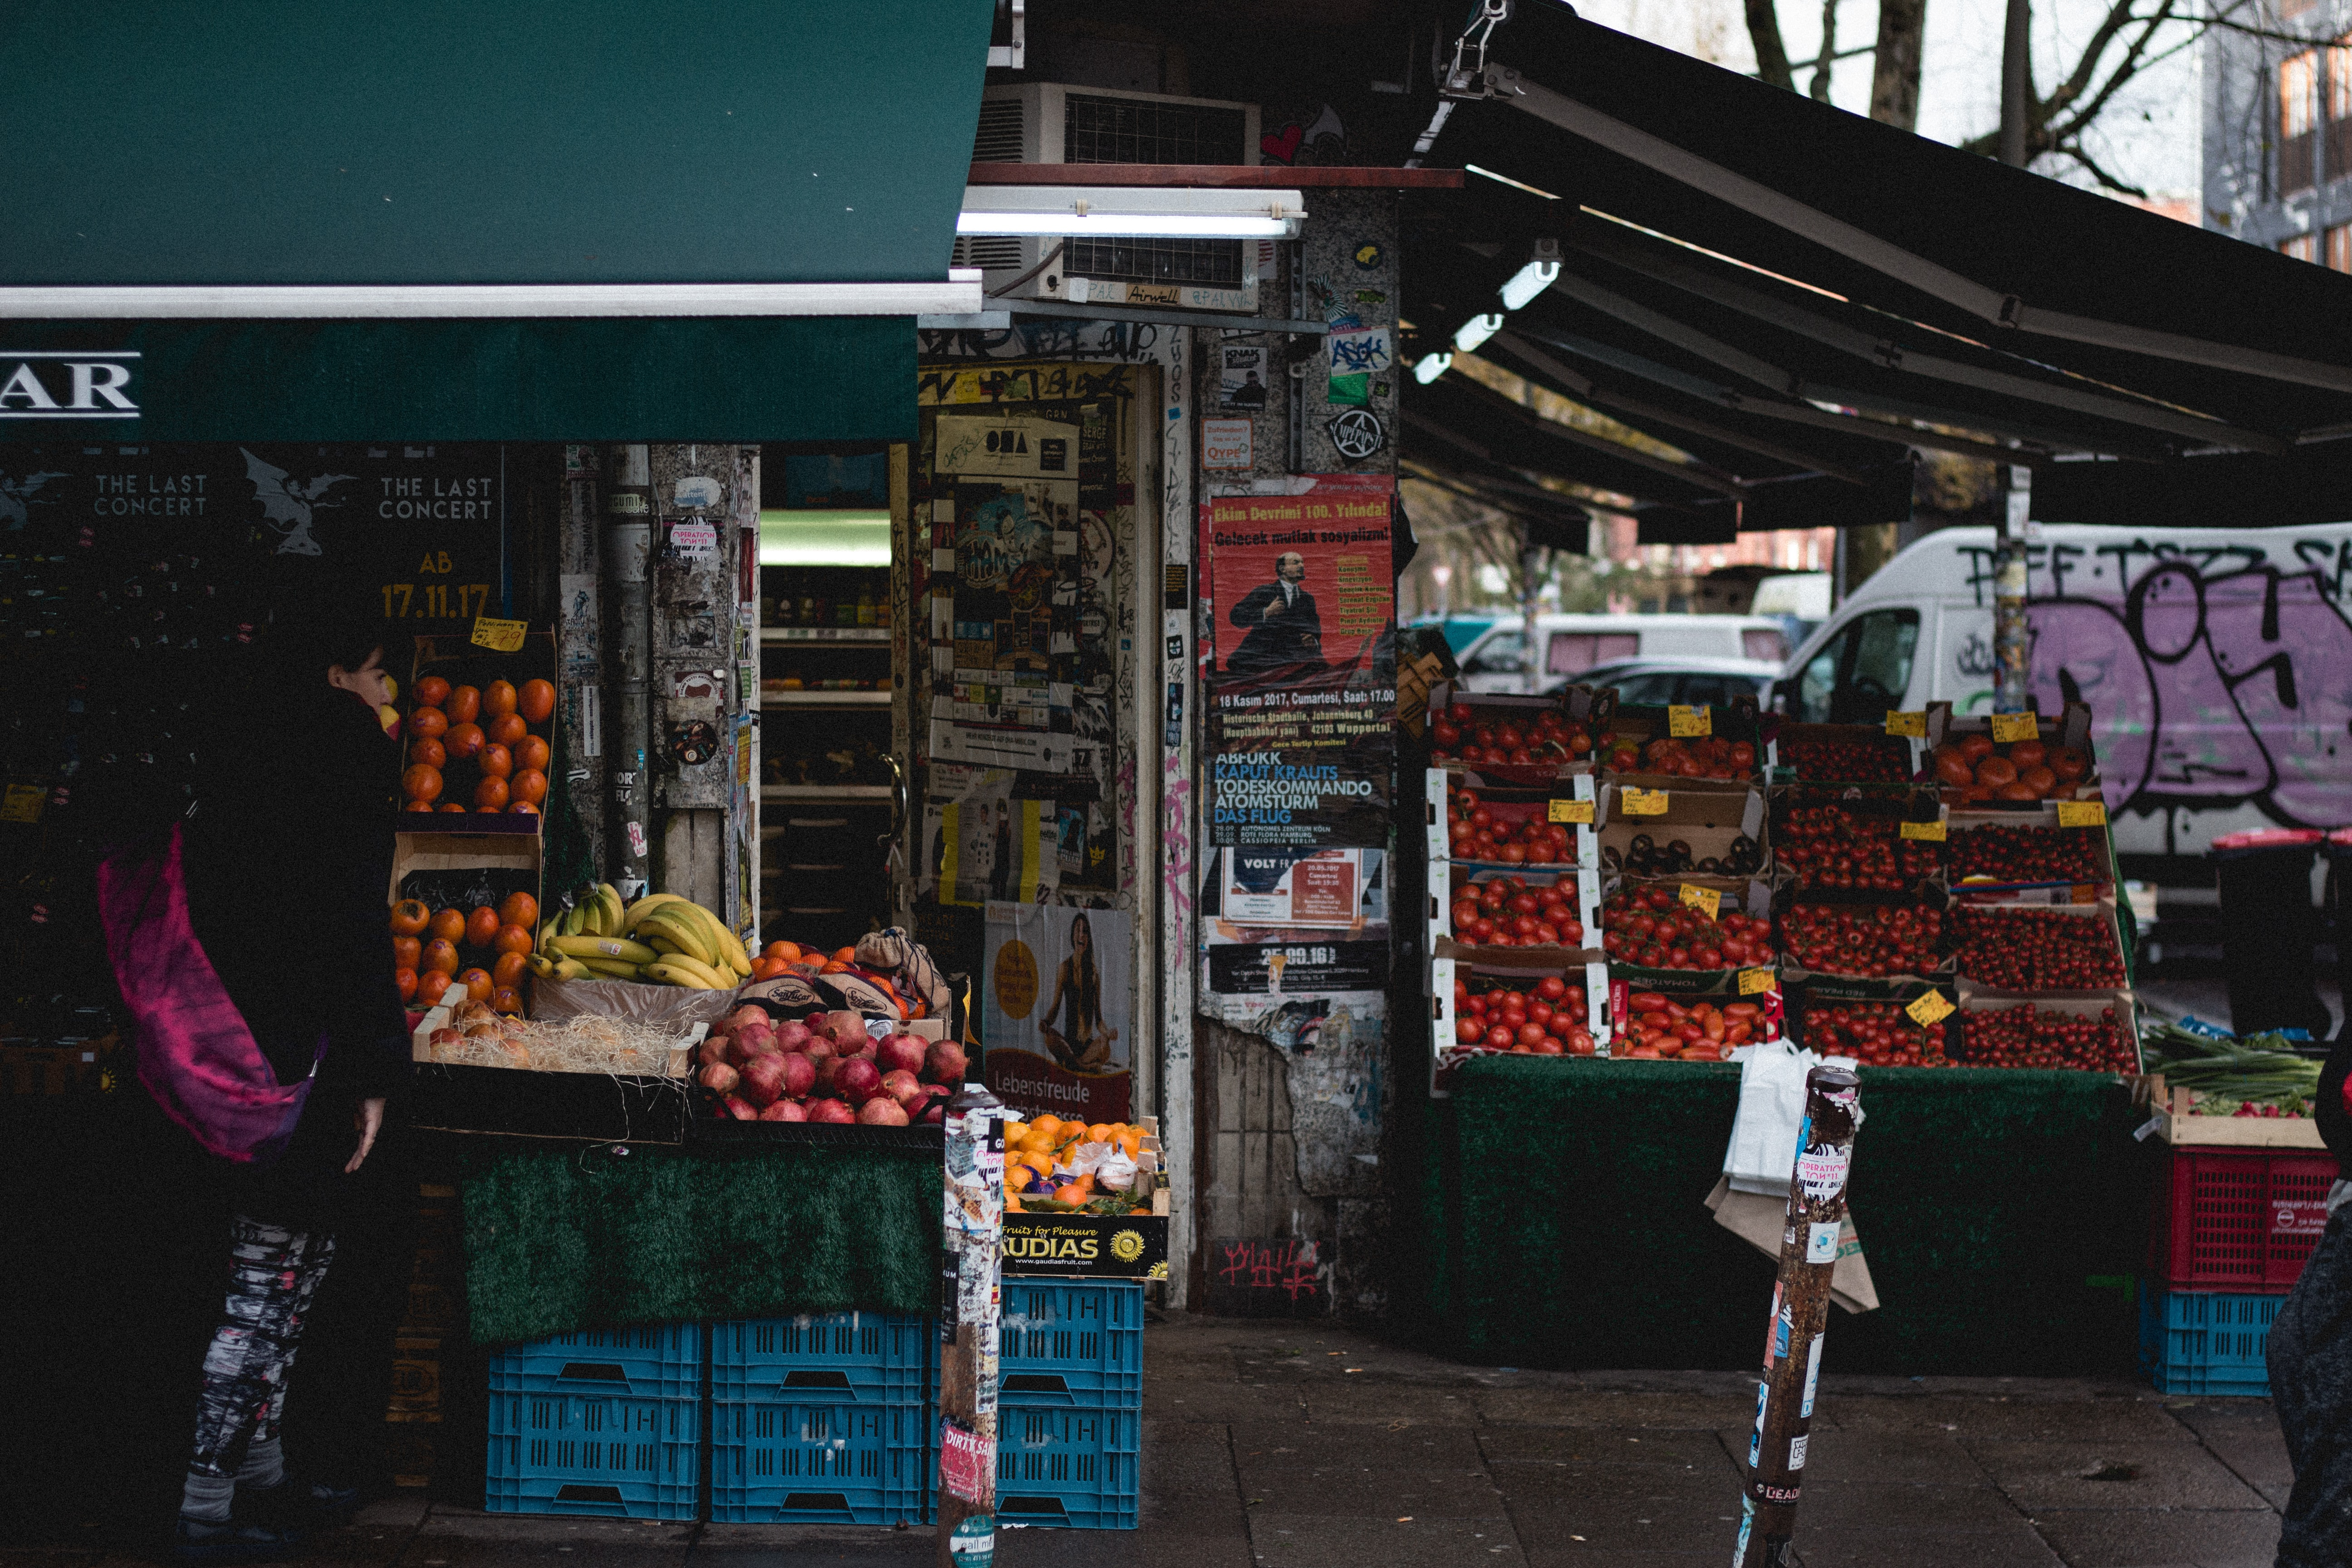 person standing near fruit stand